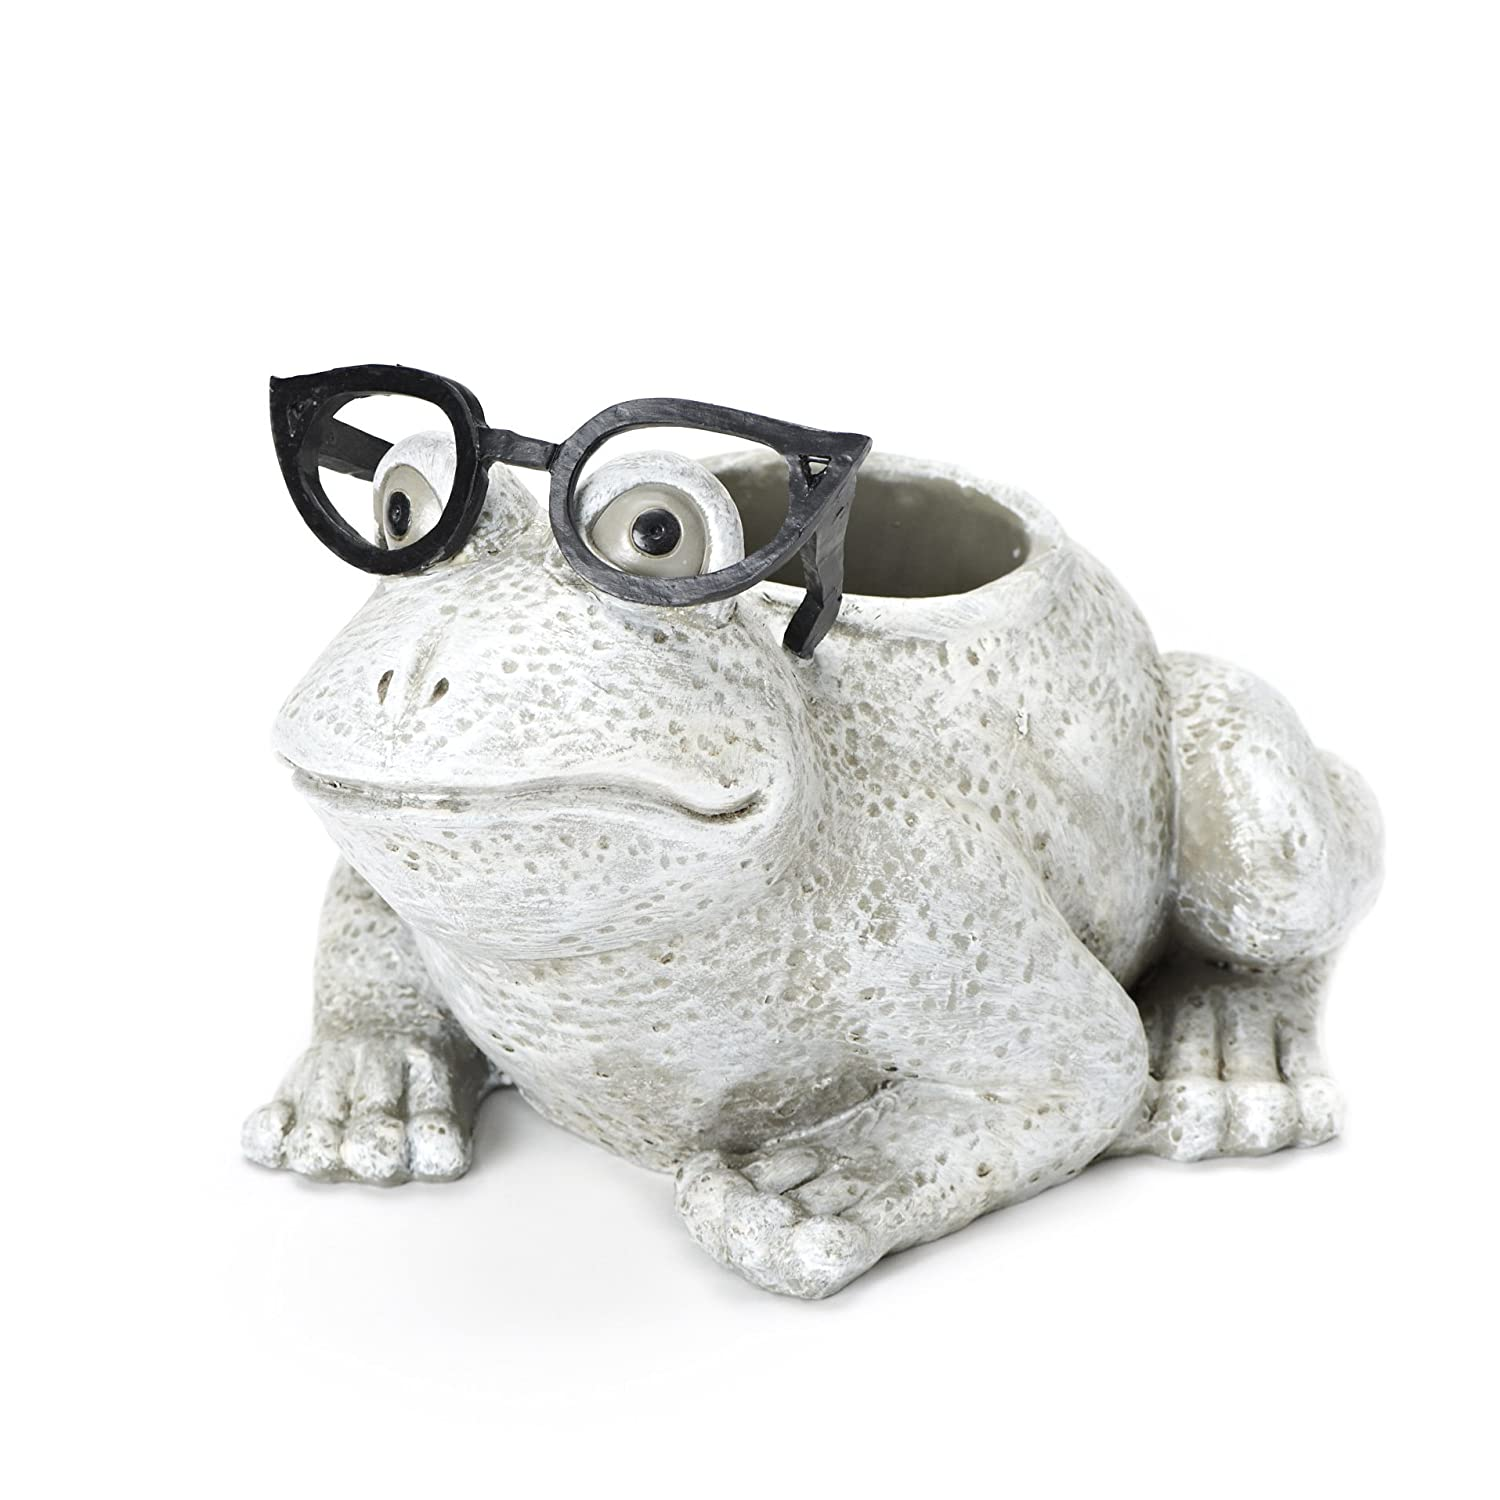 Roman Exclusive White Frog Wearing Silly Black Spectacles Planter, 6-Inch, Made of Dolomite Resin